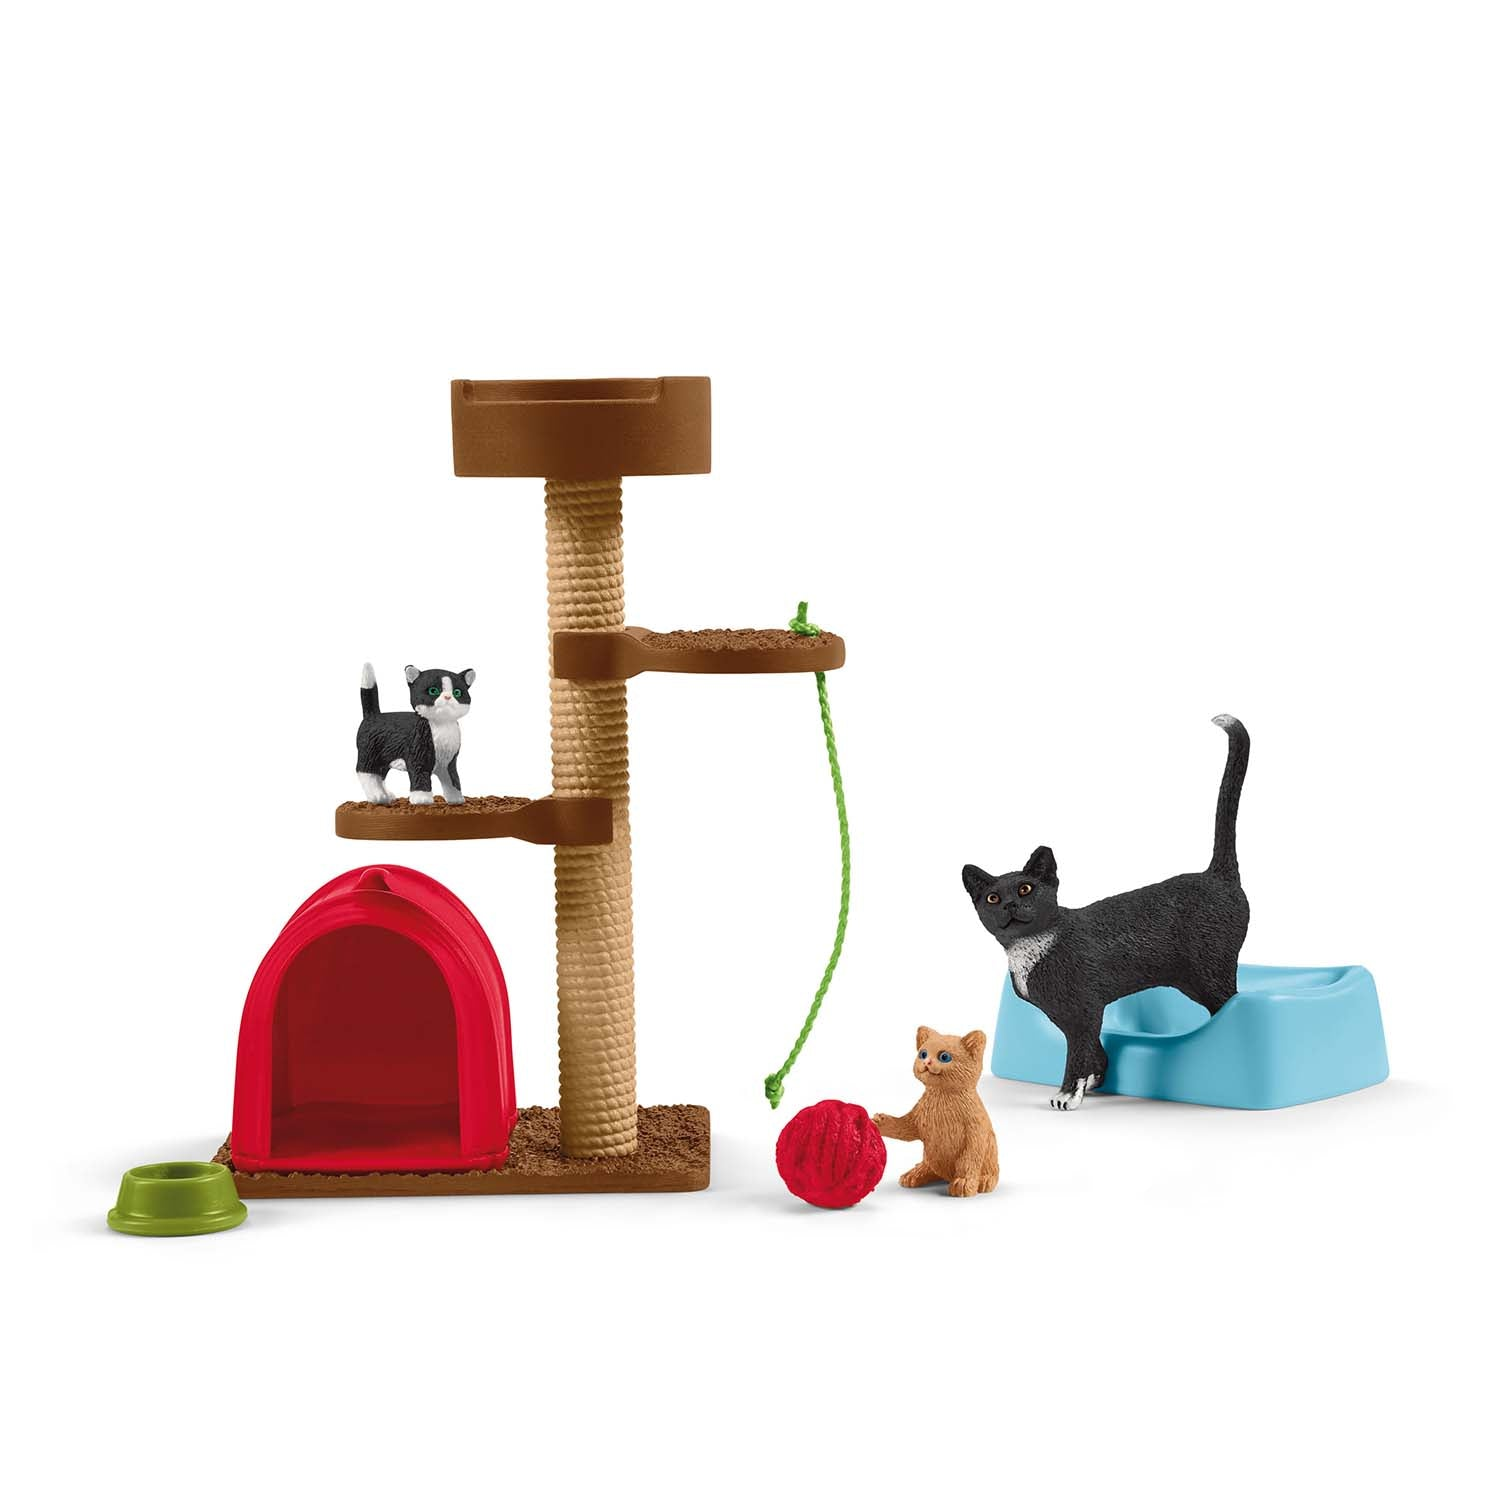 Playtime for cute cats